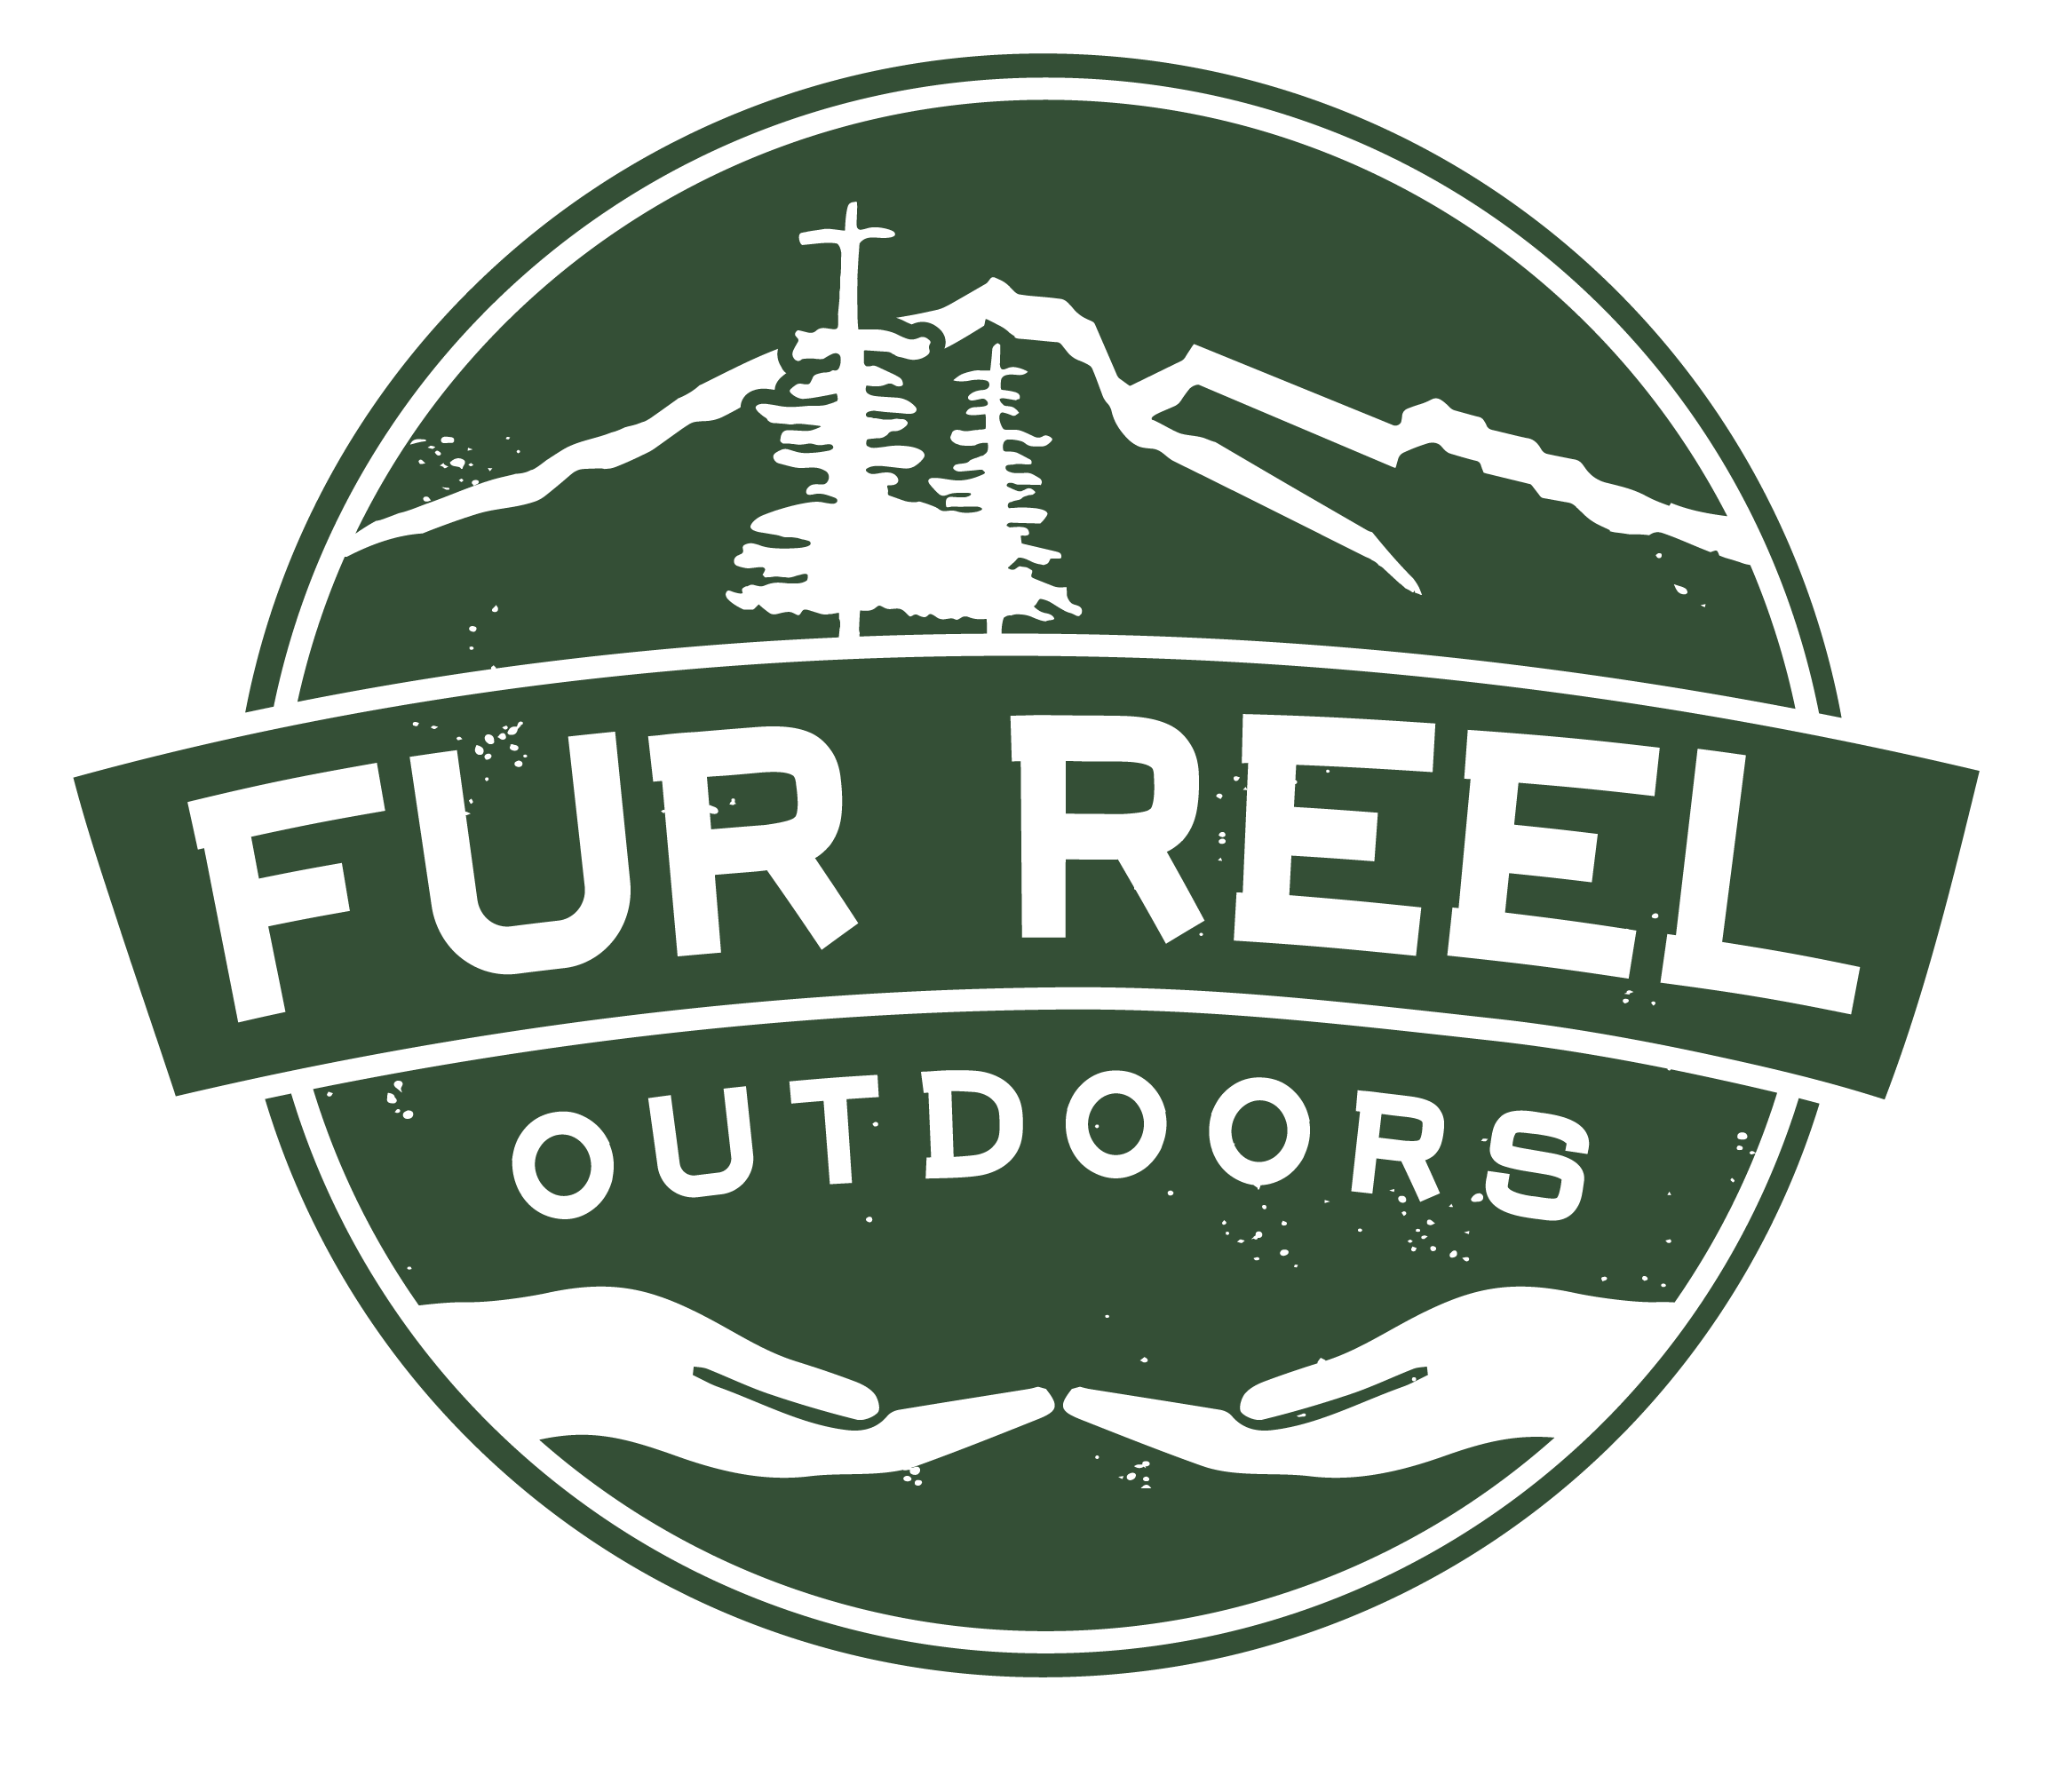 Fur Reel Outdoors